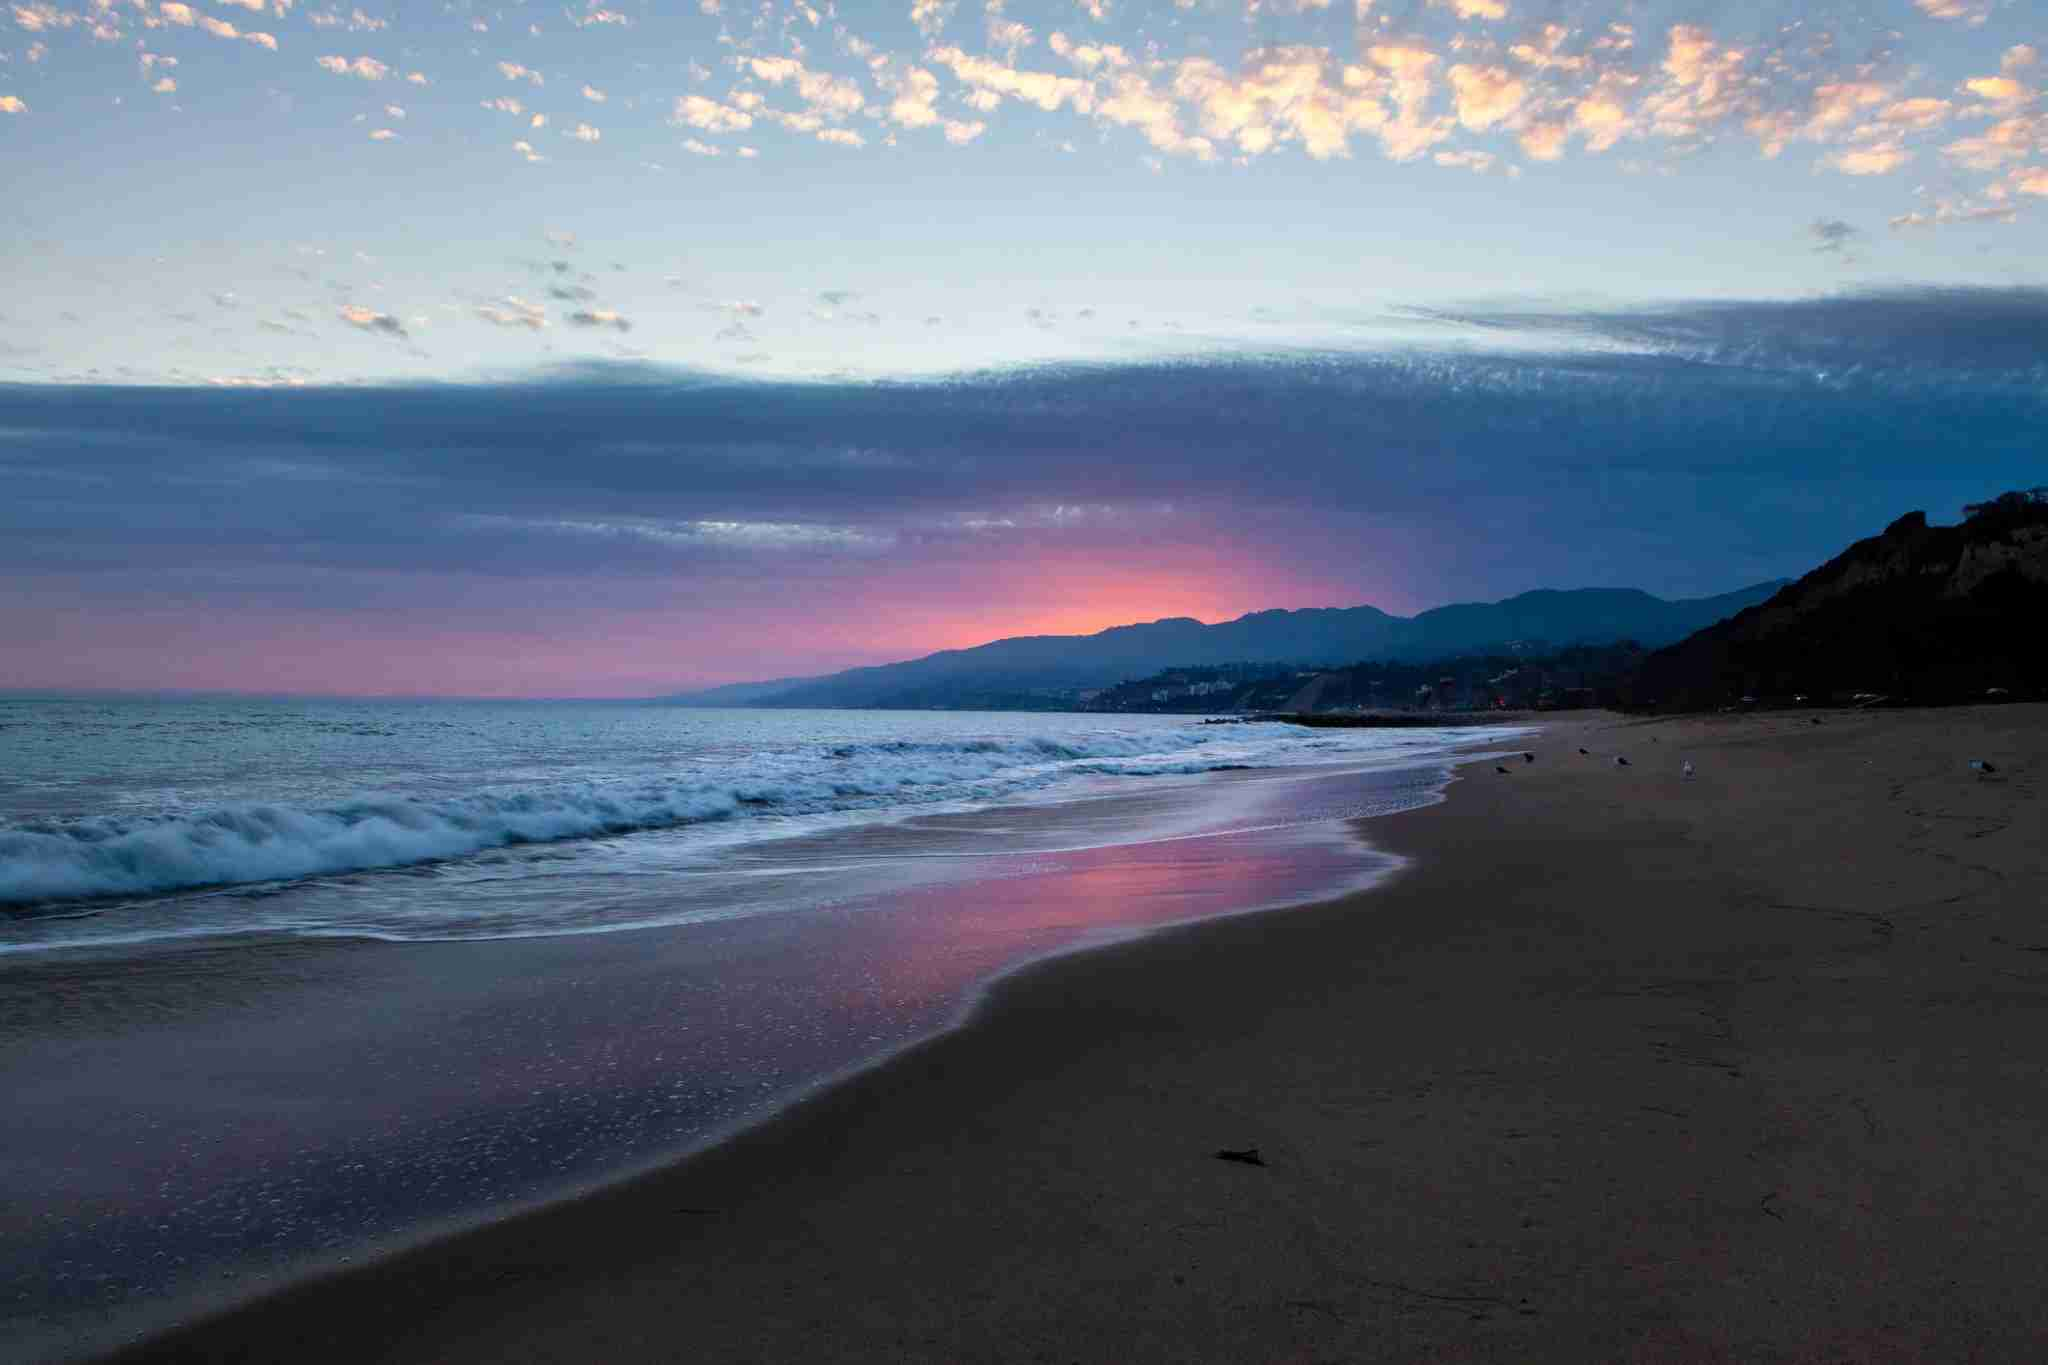 Will Rogers State Beach is beautiful at sunset. (Photo courtesy of Gary Kavanagh)